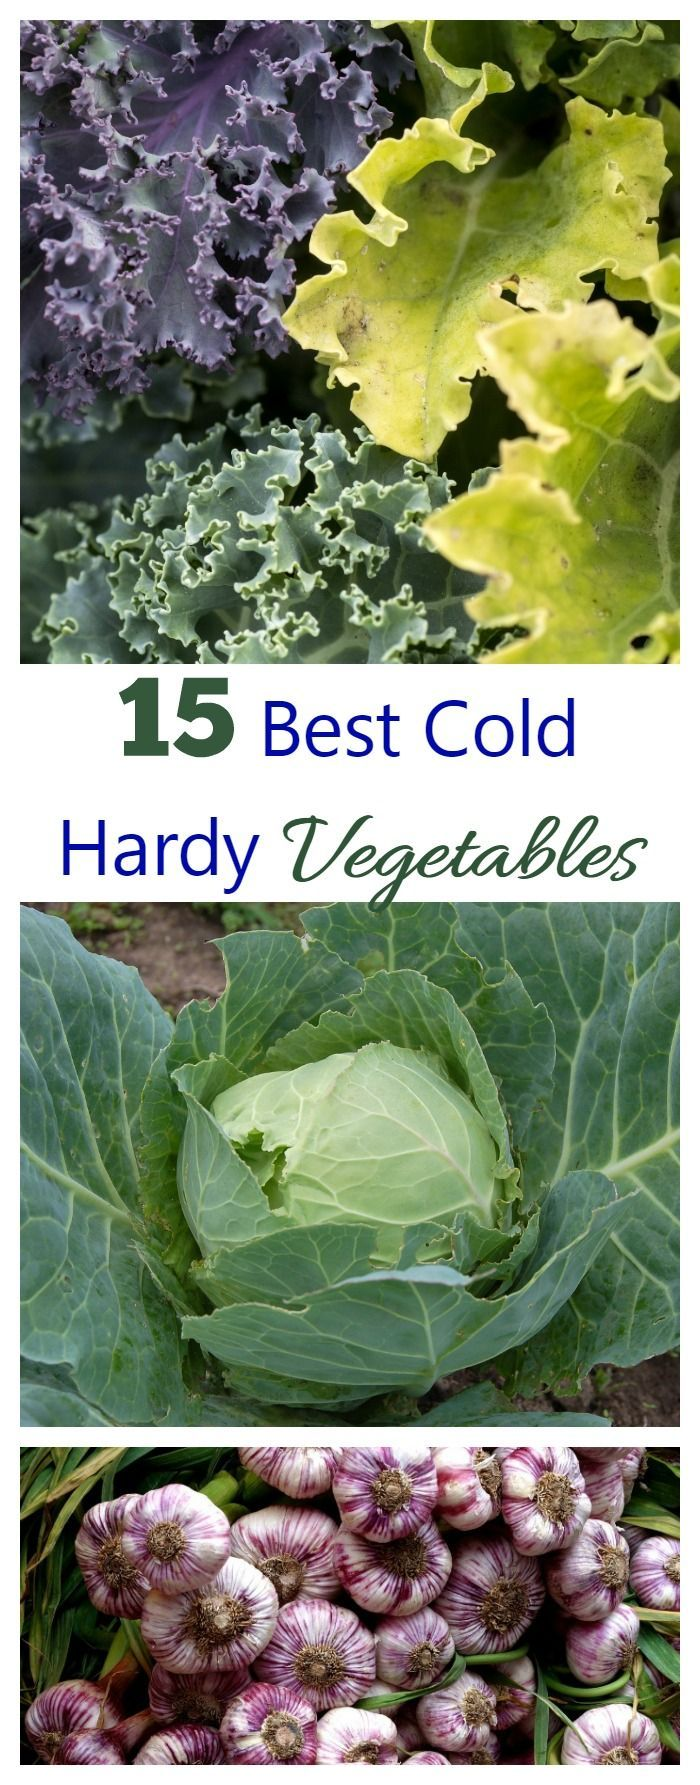 These 15 cold hardy vegetables can take quite cold temperatures. Most do not like to grow in the heat of summer, so they make good spring and fall crops.